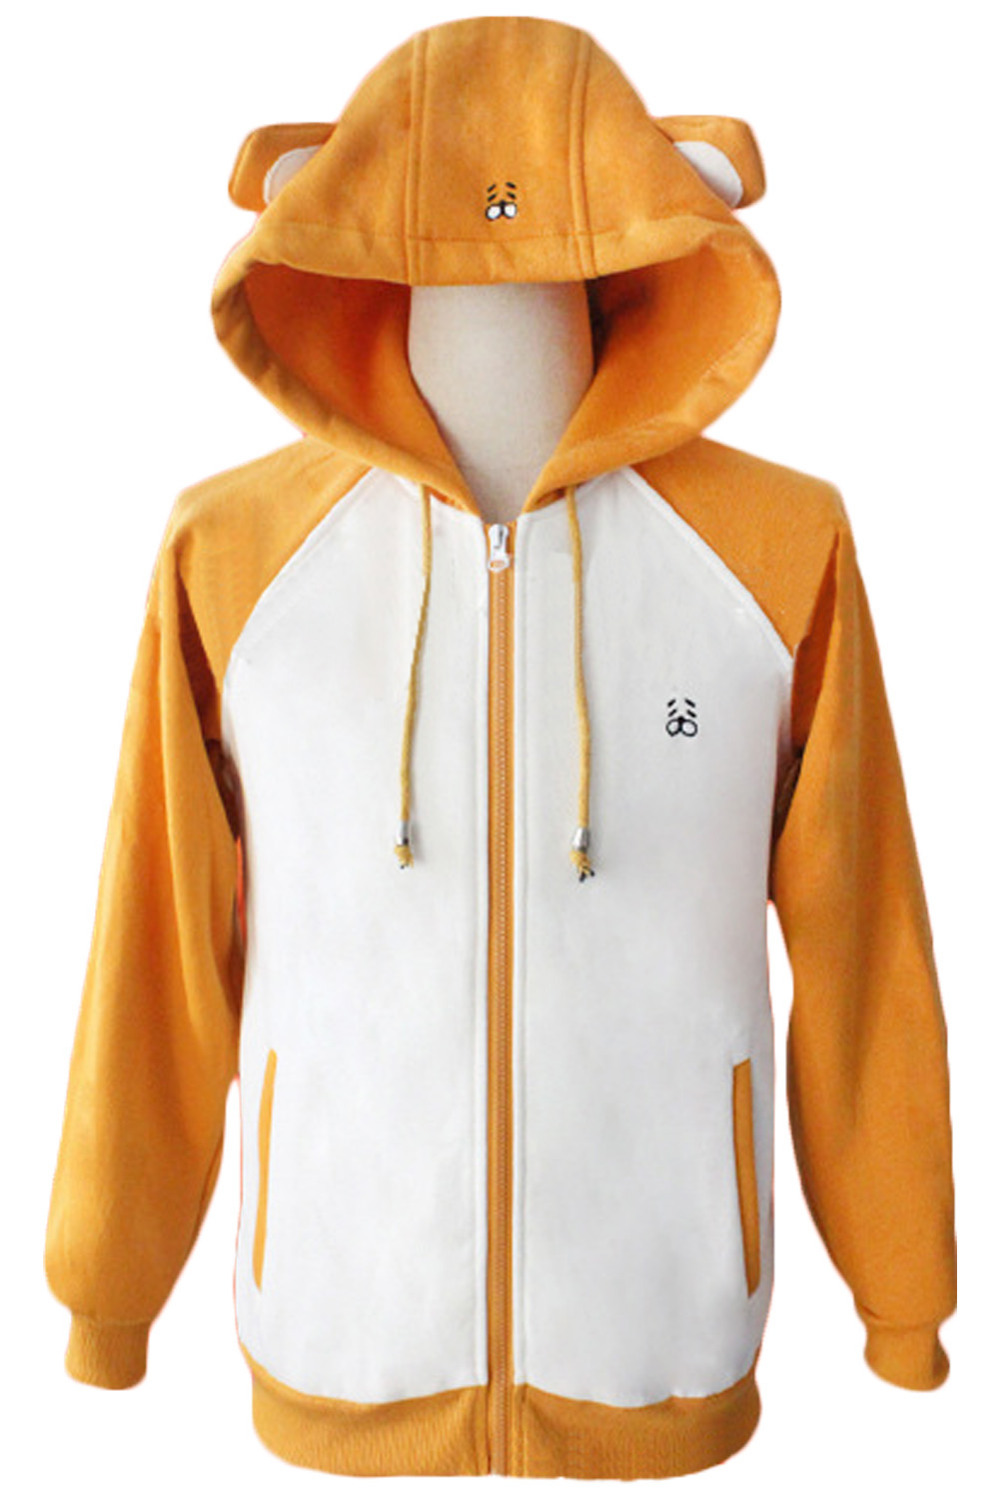 Himouto! Umaru-chan Umaru Doma Cosplay Costume Jacket Hoodie Umaru Doma Cute Dailywear Casual Wear Sweet Jacket